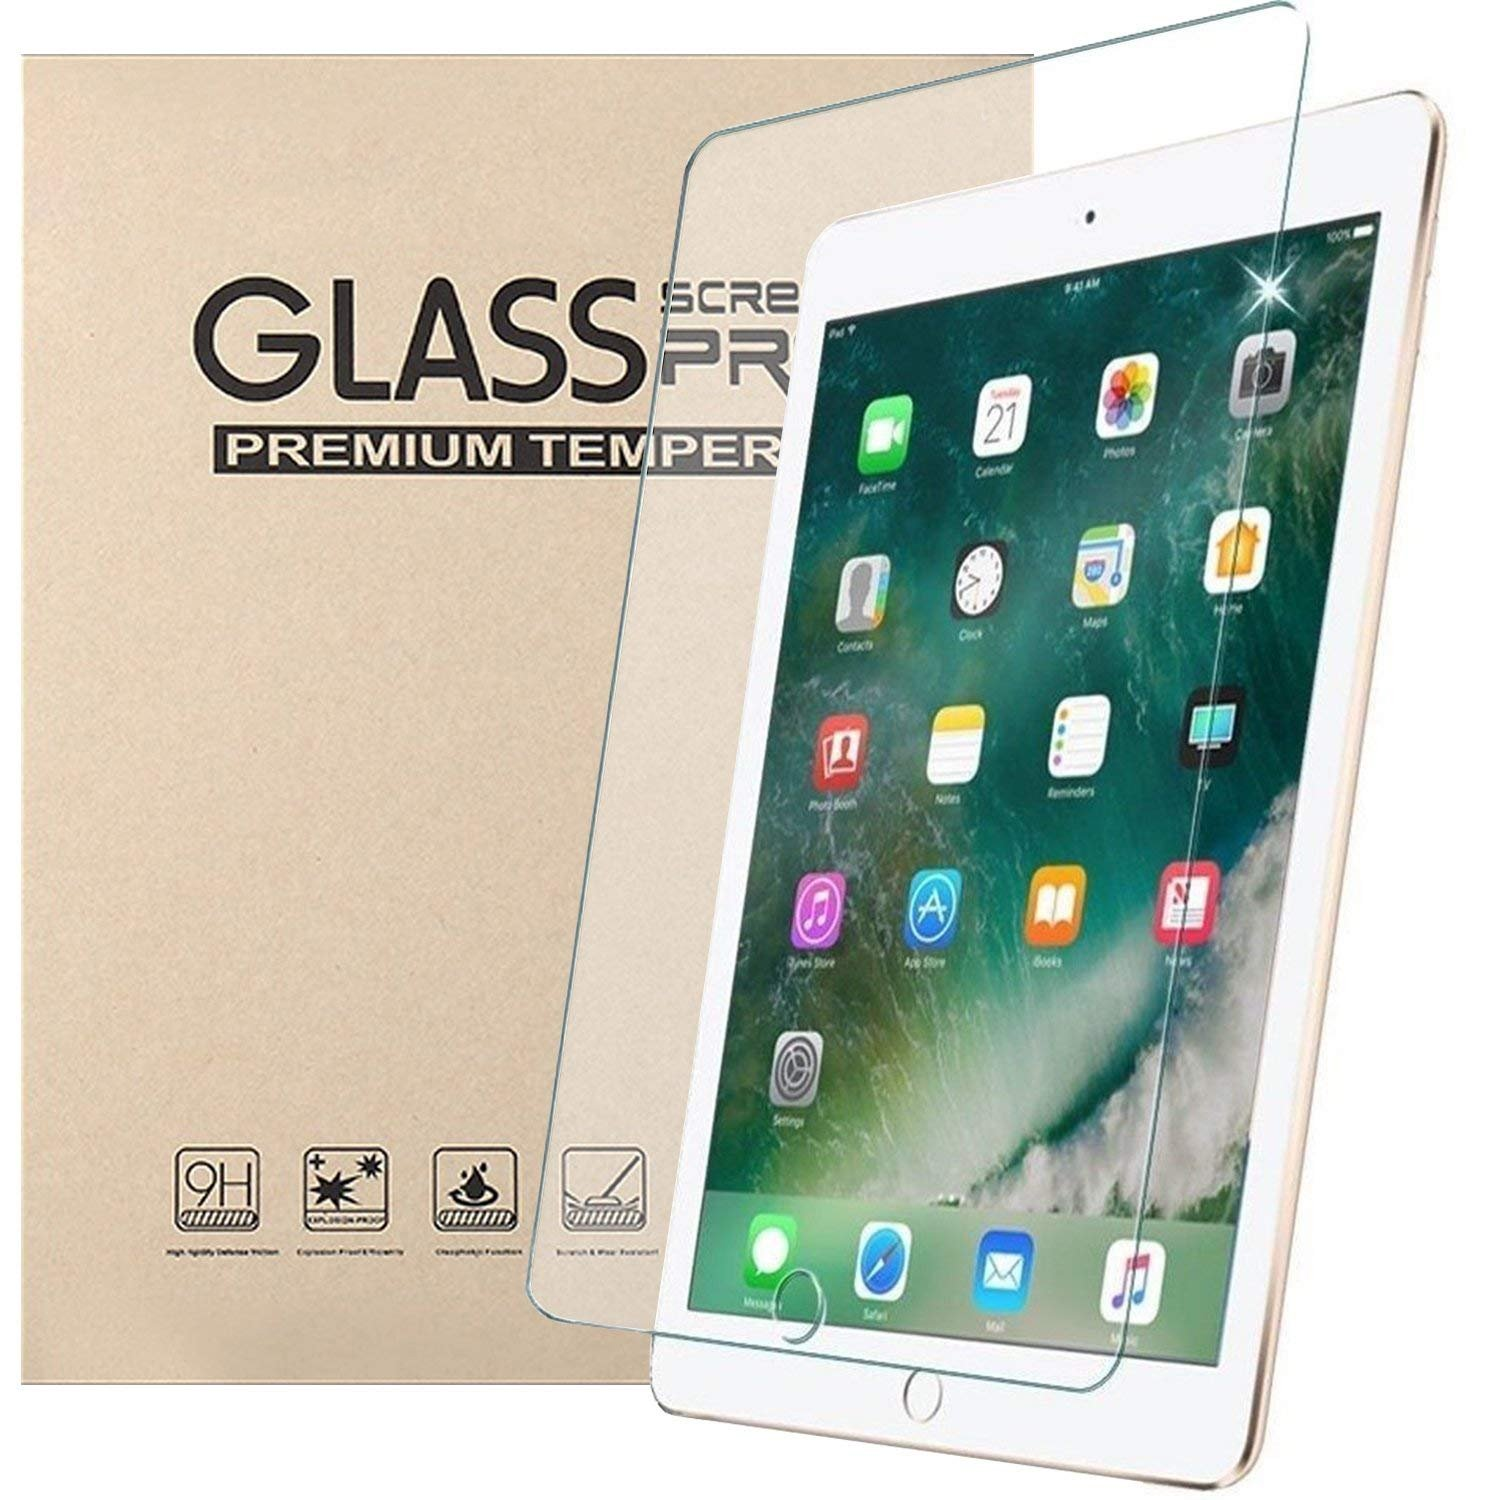 [2 Pack] New iPad 9.7 2017/2018 Glass Screen Protector, HISSP High Definition Clear 9H Hardness Scratch Resistant Tempered Film for iPad 5th/6th Generation, iPad Air 1, iPad Air 2, iPad Pro 9.7 by HISSP